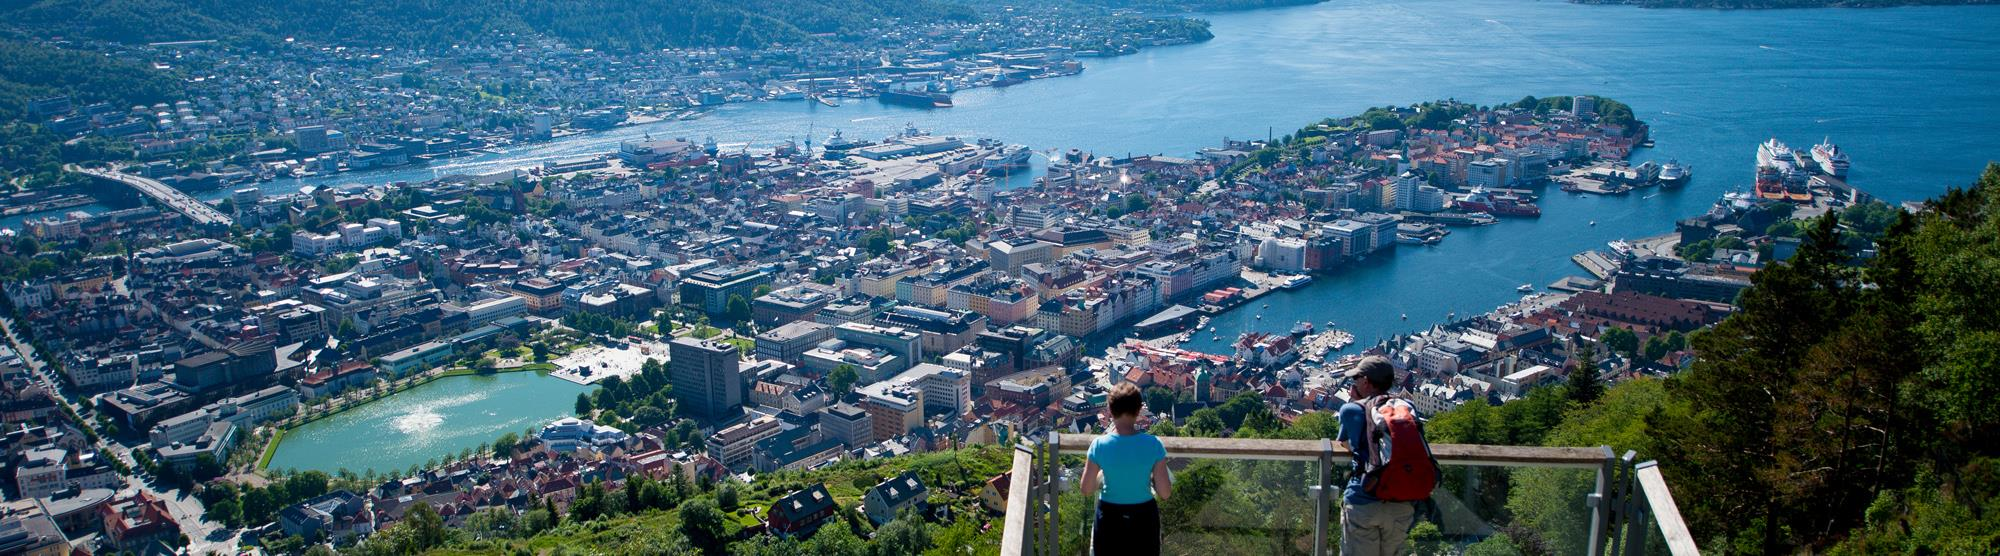 10 good reasons why Bergen